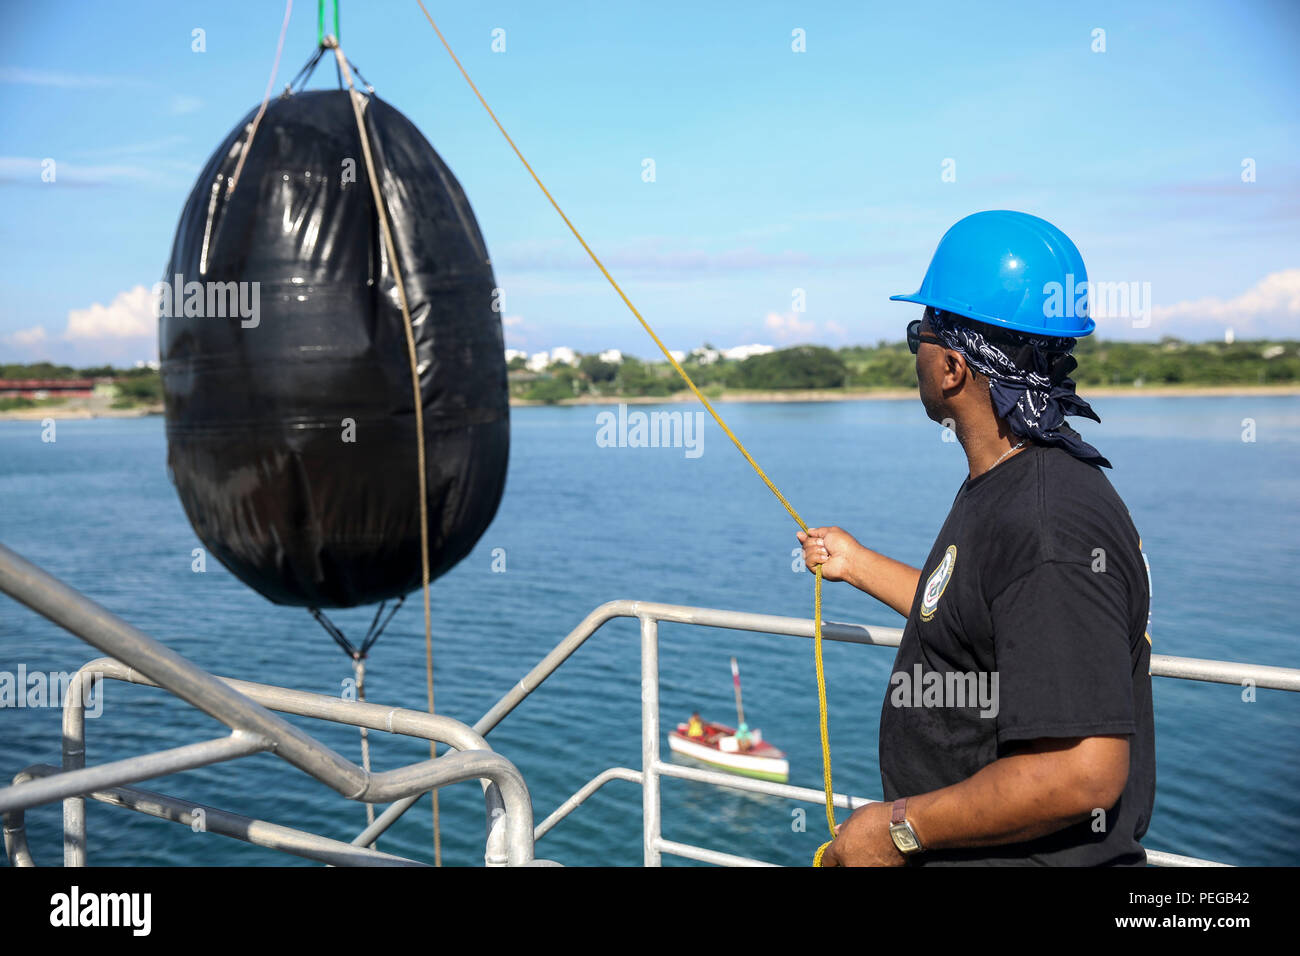 150815-M-GO800-125 SAN FERNANDO CITY, Philippines (August 15, 2015) – Civilian Mariner Michael Lee pulls in a buoy aboard the Military Sealift Command joint high speed vessel USNS Millinocket (JHSV 3), Aug. 15. The Millinocket is currently underway en route to Vietnam, the final stop in Pacific Partnership 2015. Task Force Forager, embarked aboard Millinocket is serving as the secondary platform for Pacific Partnership, led by an expeditionary command element from the Navy's 30th Naval Construction Regiment (30 NCR) from Port Hueneme, California. Now in its 10th iteration, Pacific Partnership  - Stock Image